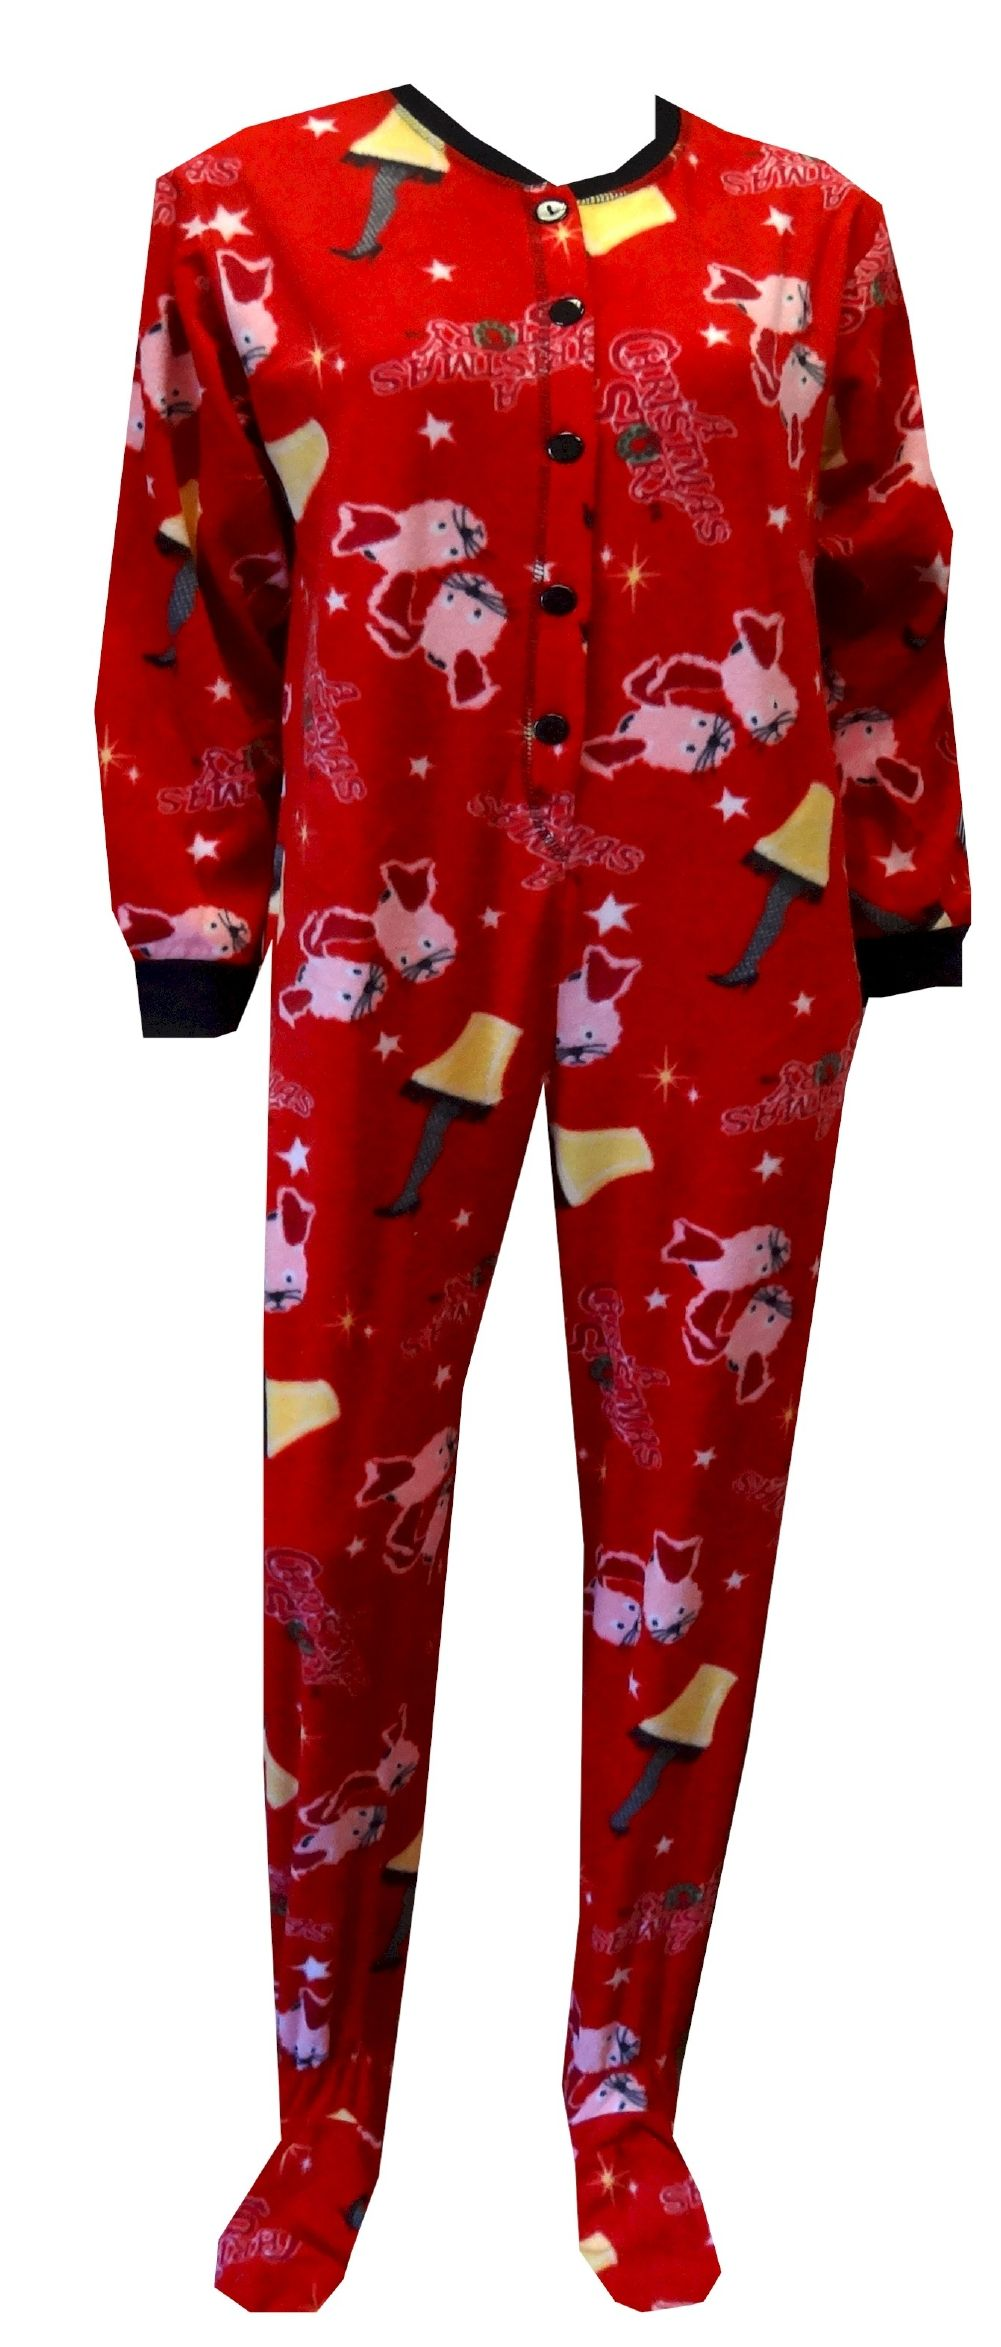 A Christmas Story Red Onesie Footie Pajama These are the jammies ...